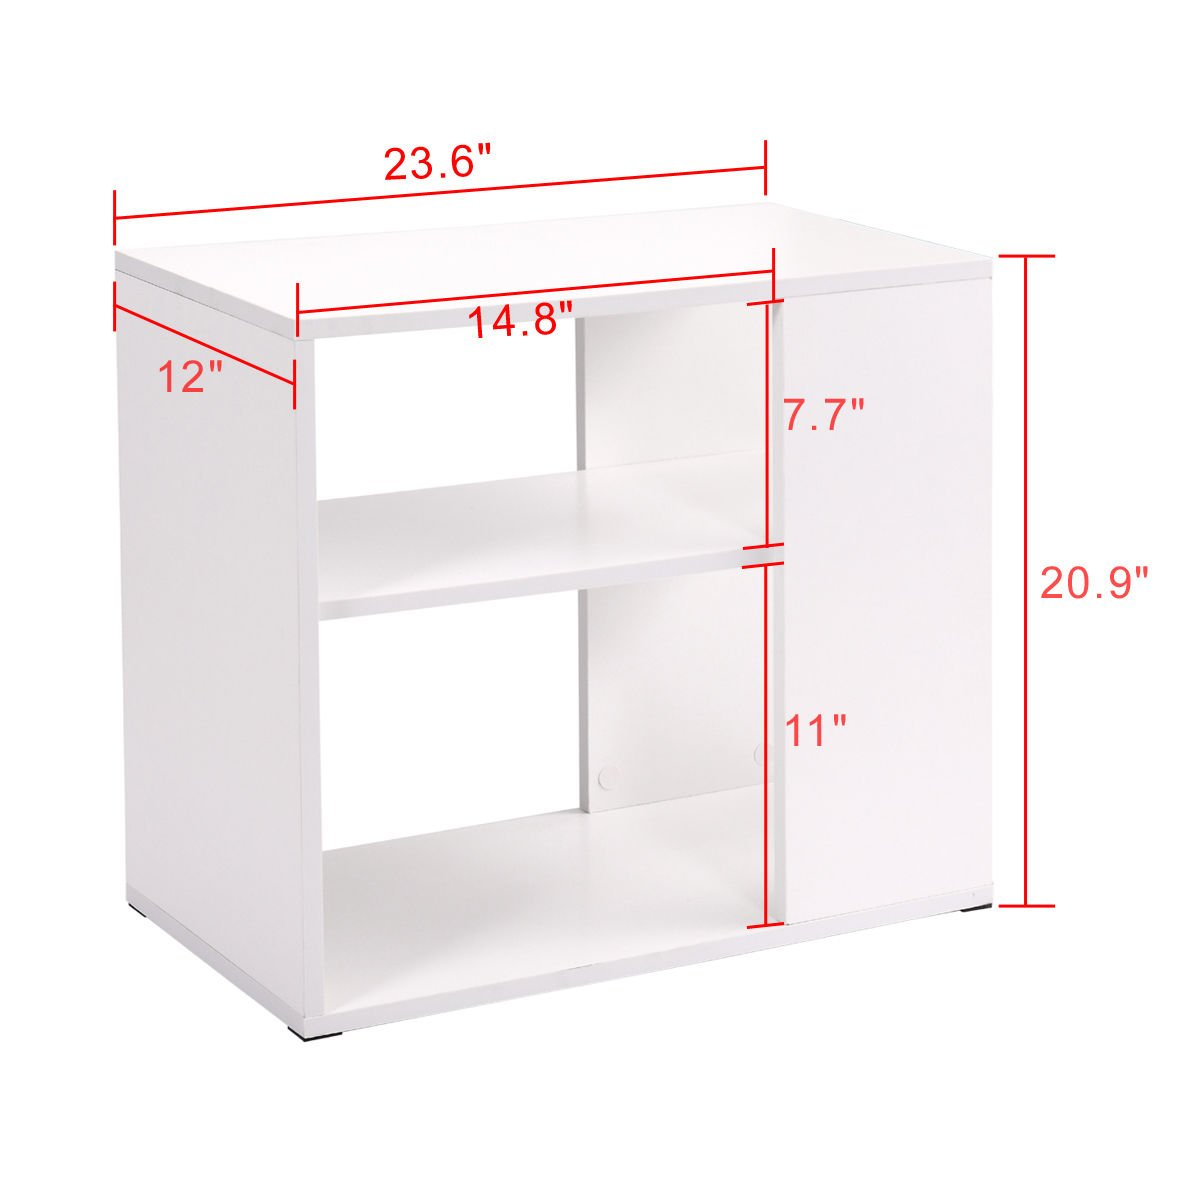 Side Sofa Table Coffee Tray Ottoman Couch Console Stand End Magazine Organizer White by Eramaix (Image #3)